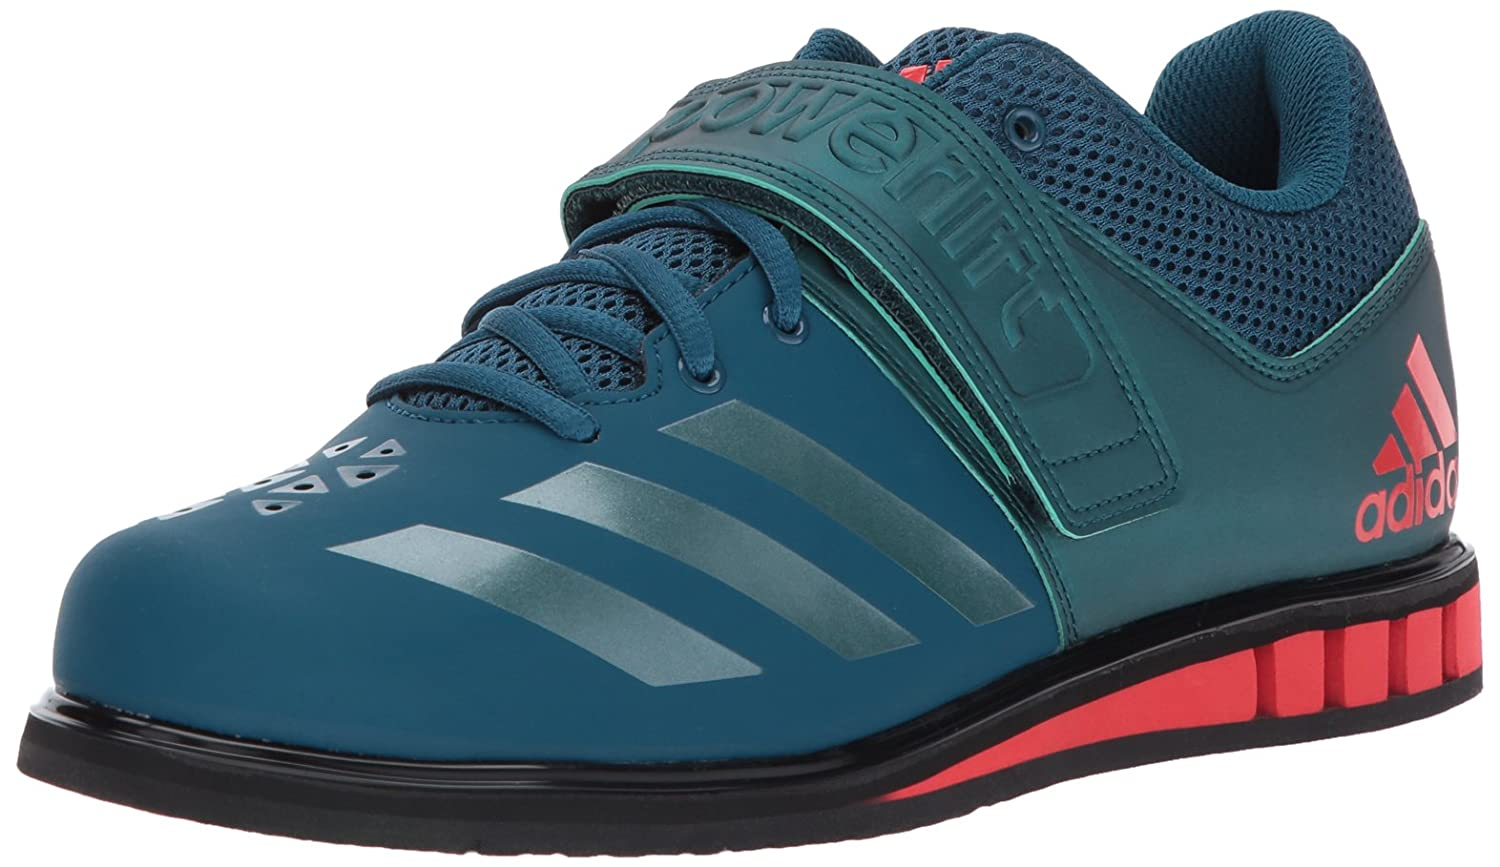 Petrol Night Mystery Green Core Red adidas Powerlift.3.1 shoes Men's Weightlifting